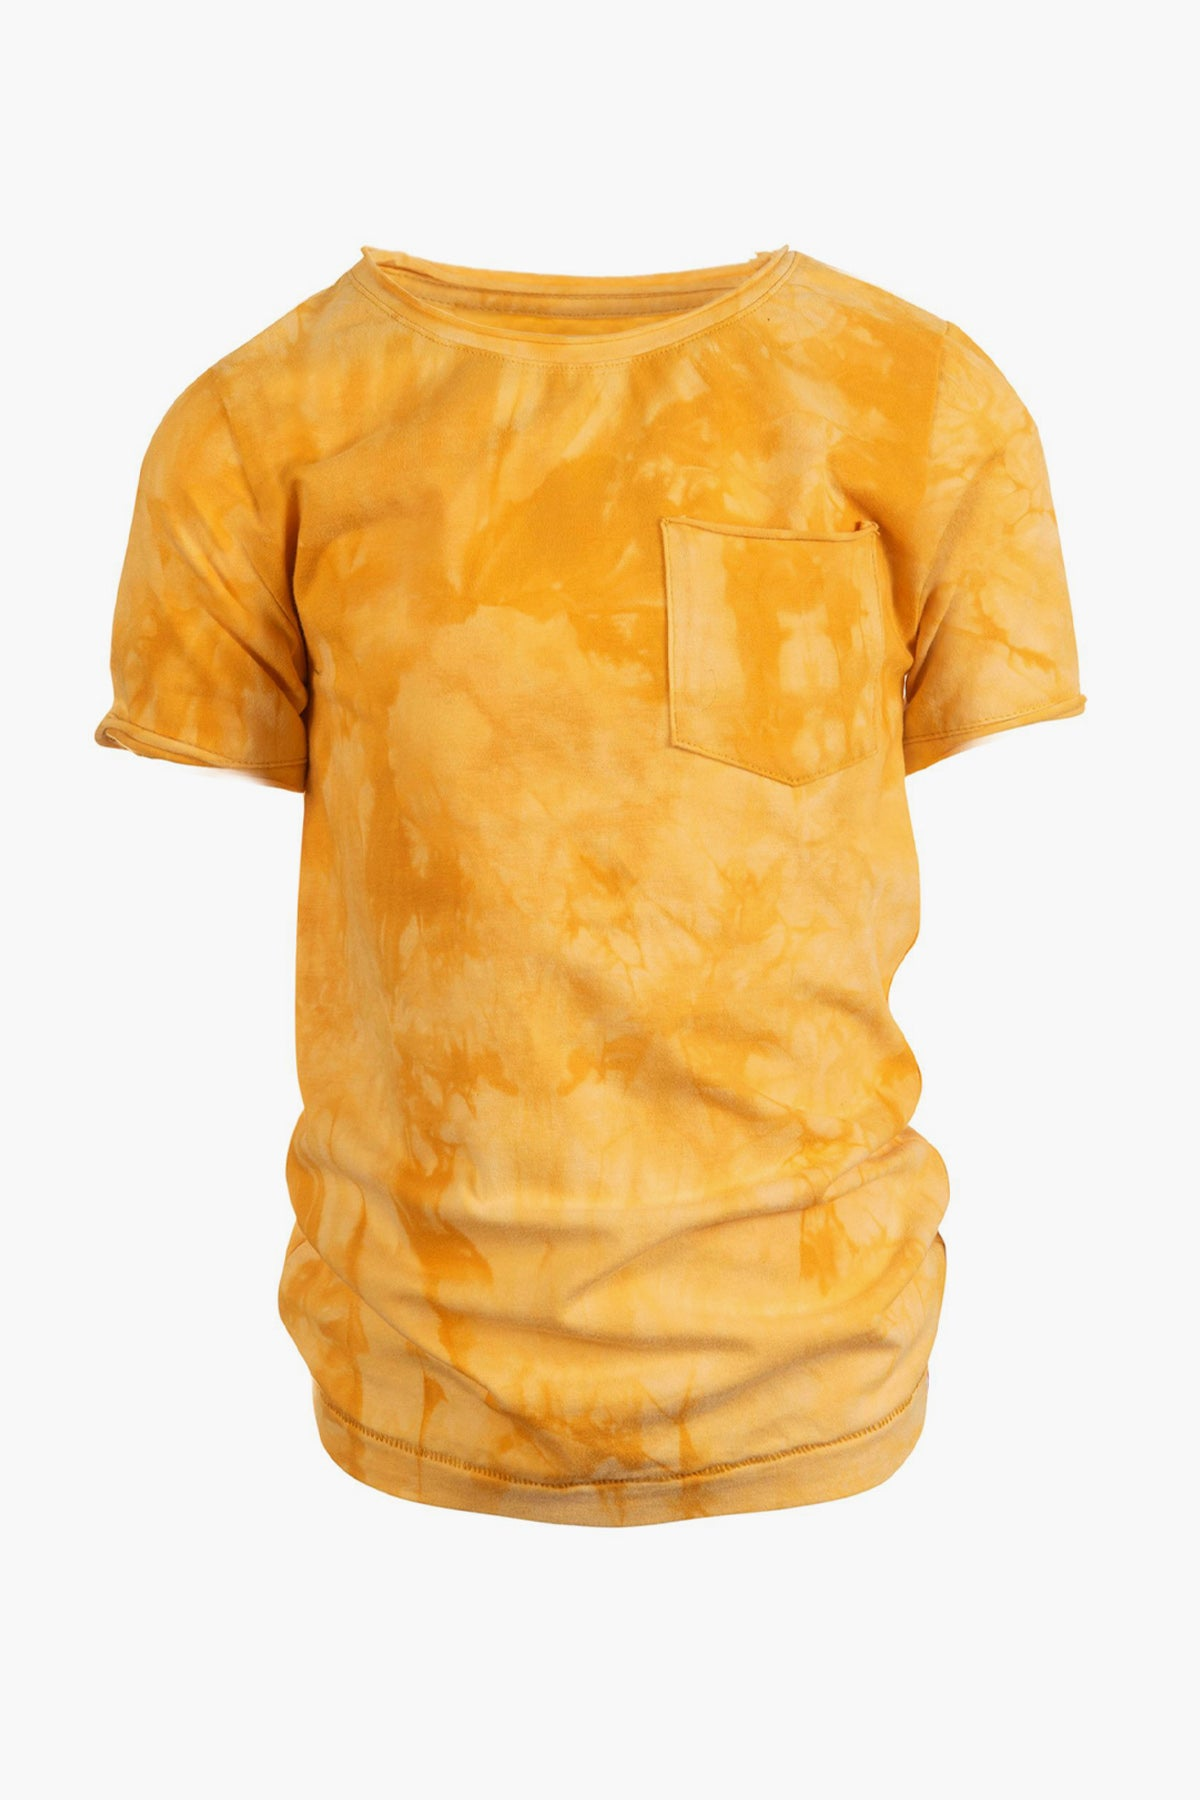 Appaman Concert Boys Shirt - Lemon Tie Dye